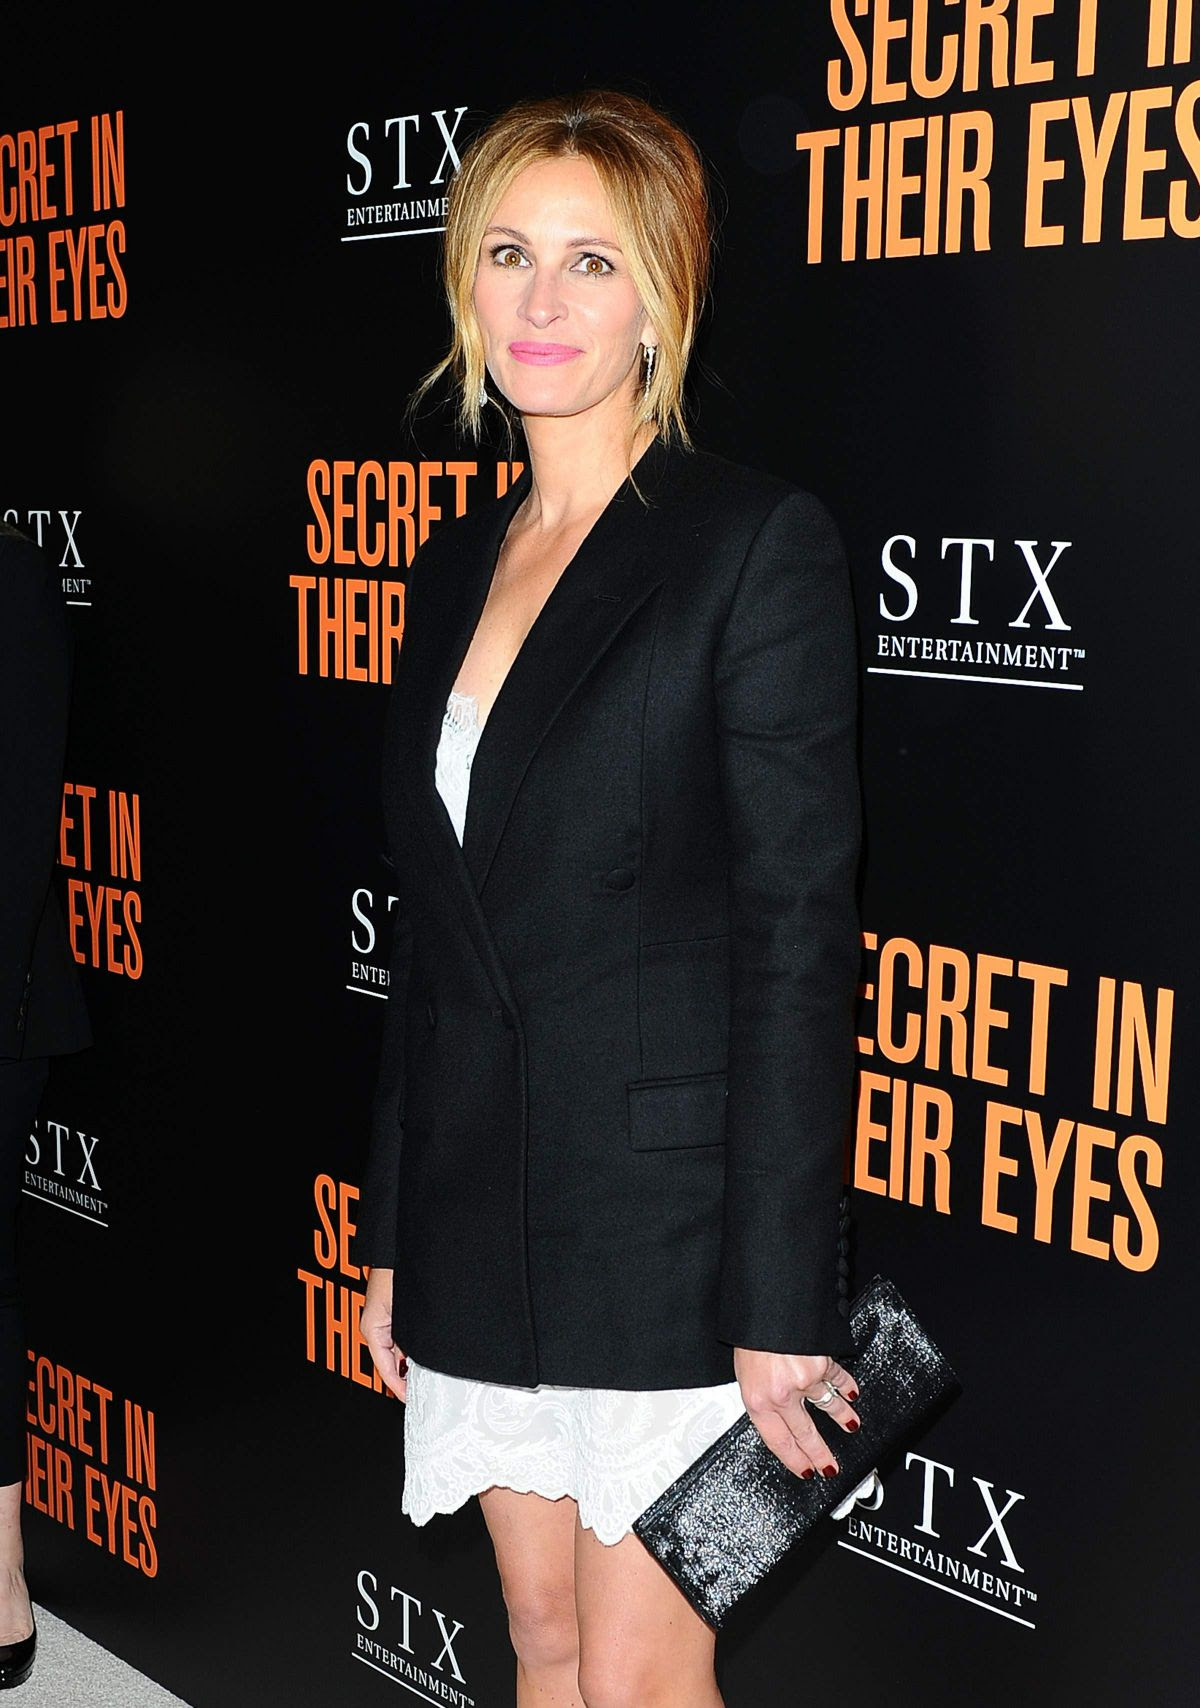 JULIA ROBERTS at Secret in Their Eyes Premiere in Los Angeles